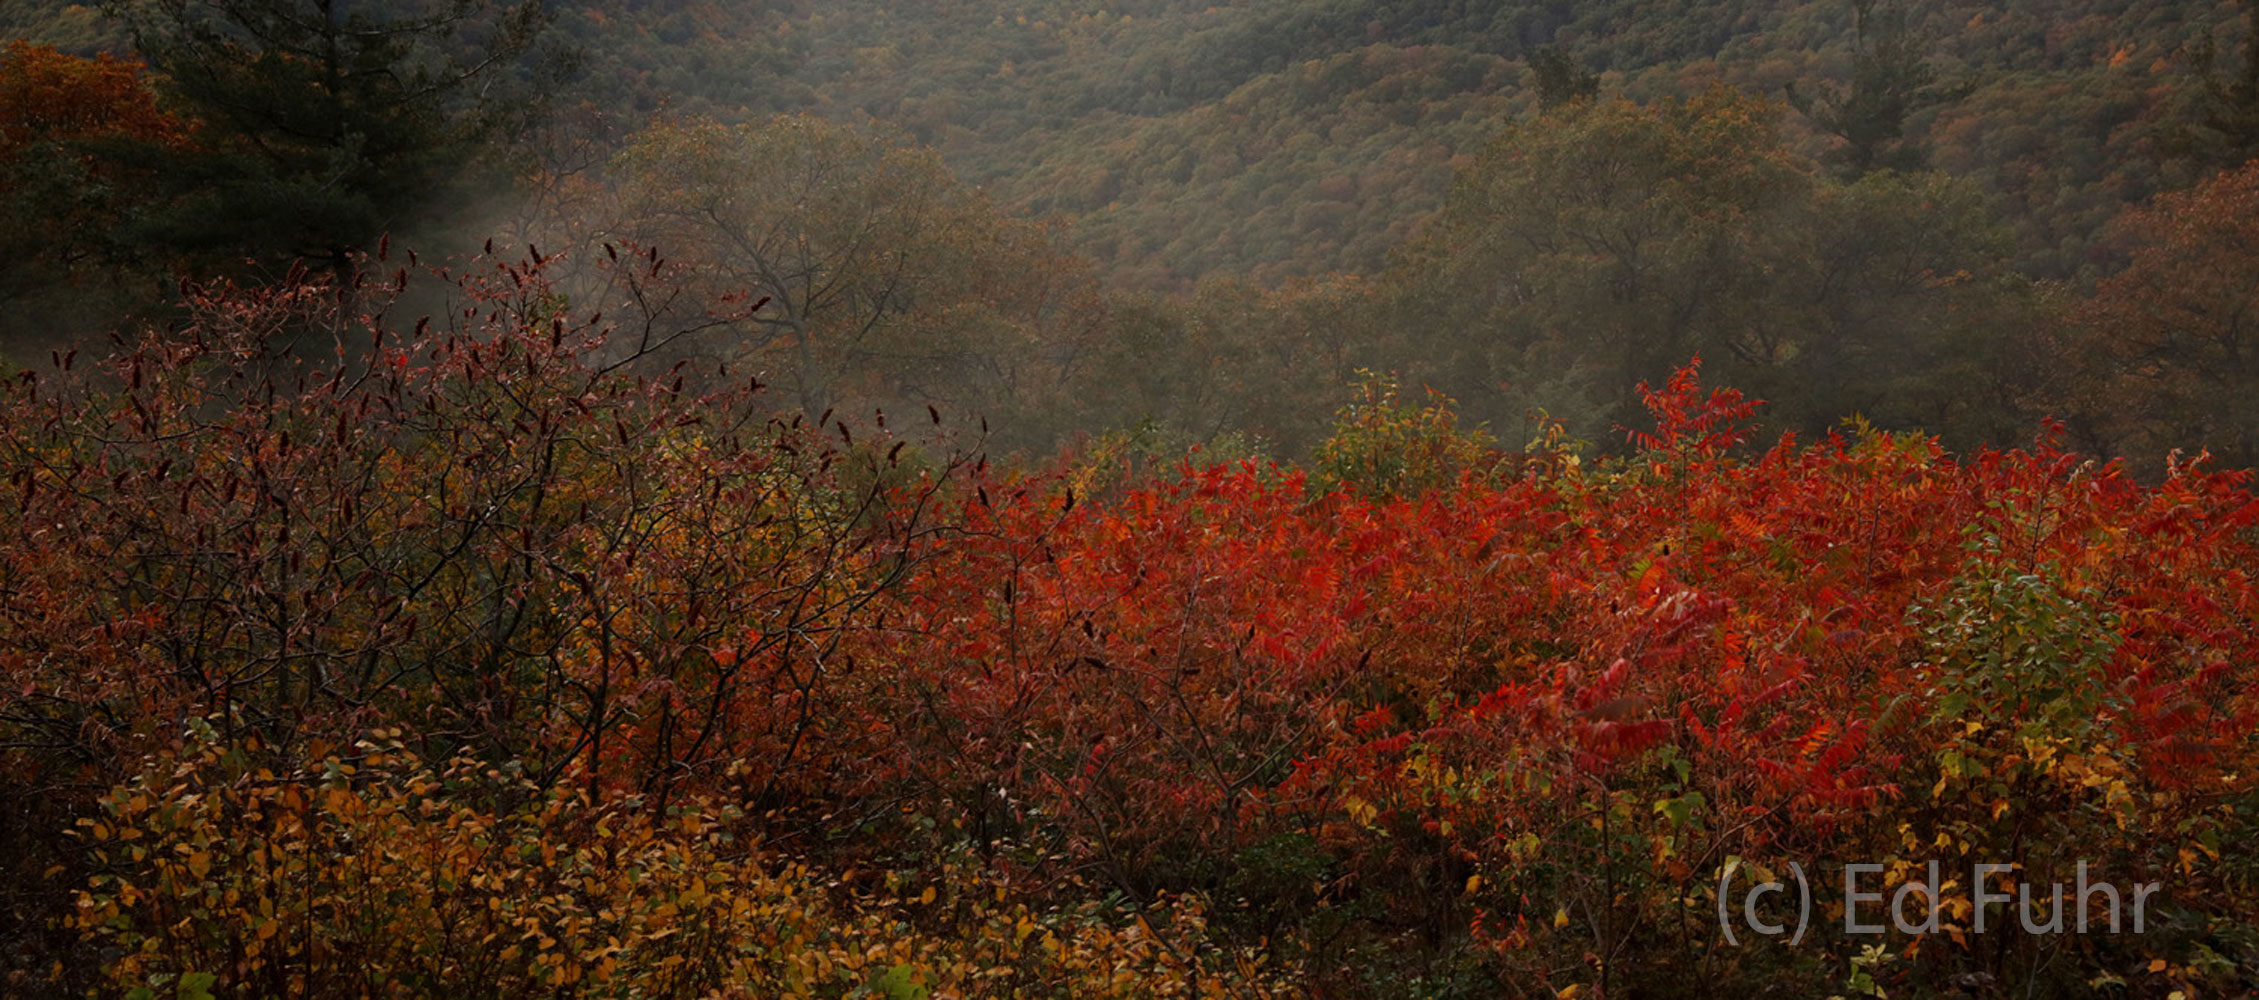 A colorful hillside of red sumac and fog on a late autumn day.